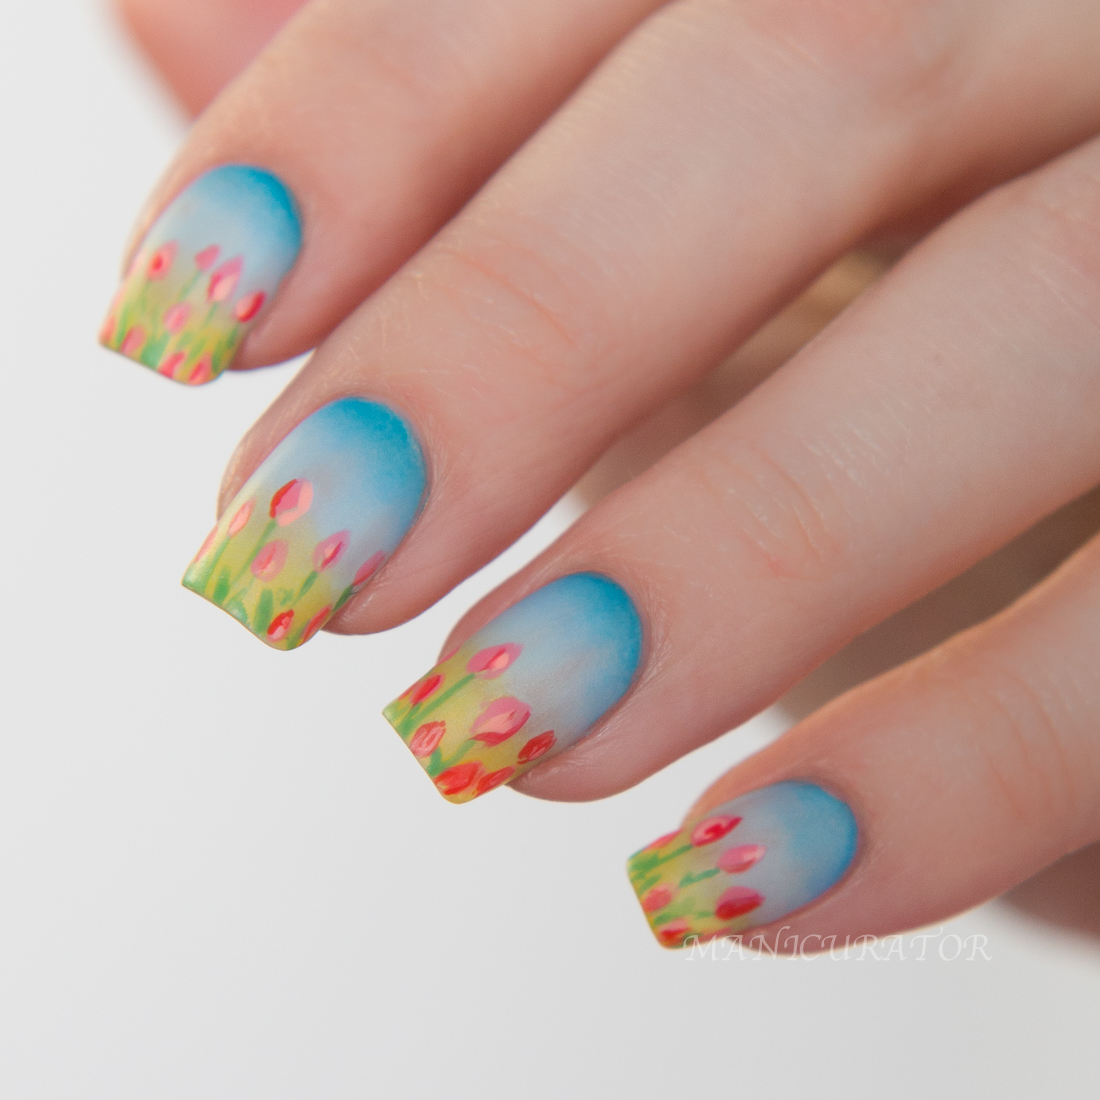 China glaze road trip spring 2015 freehand tulip nail art i used all but one for this design and i included that swatch at the end prinsesfo Gallery